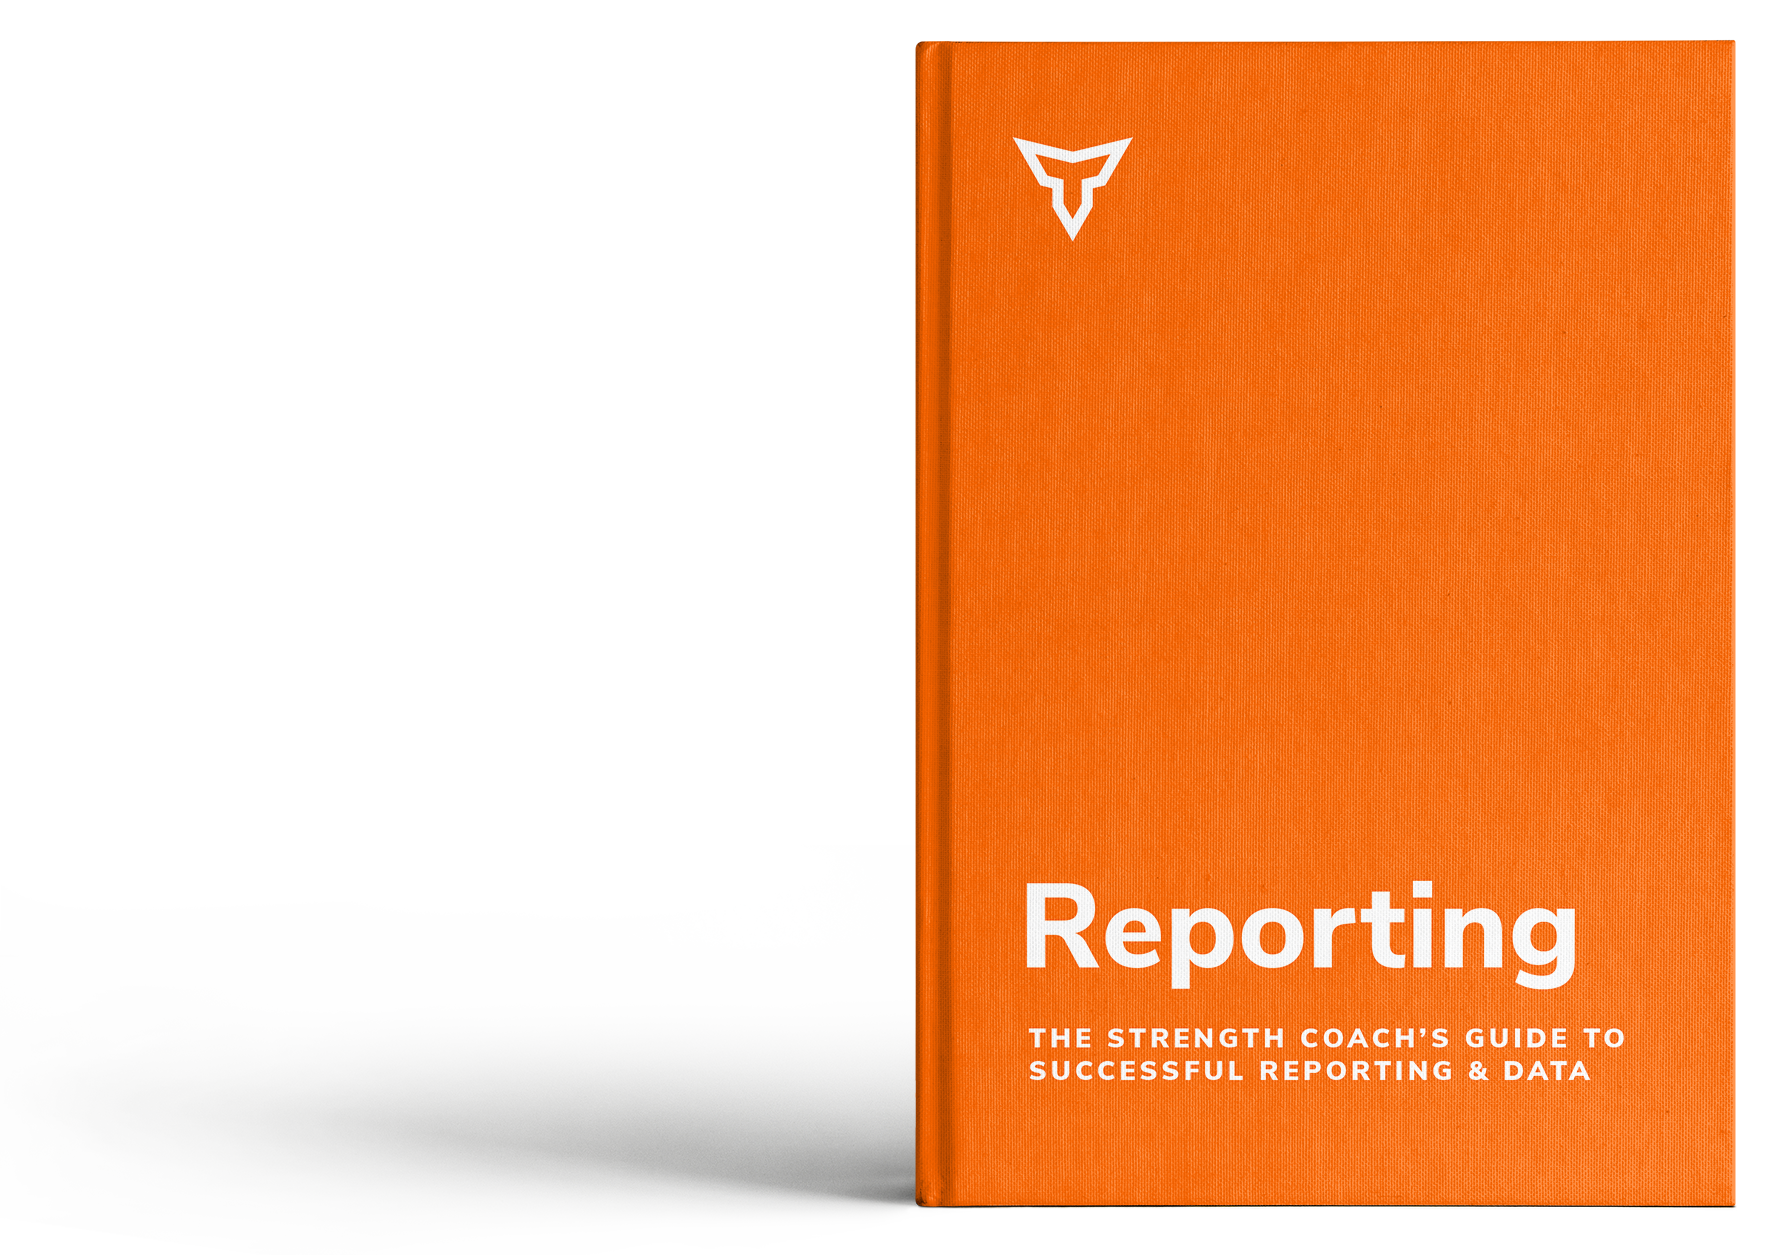 Reporting-Mockup-Transparent (no padding)